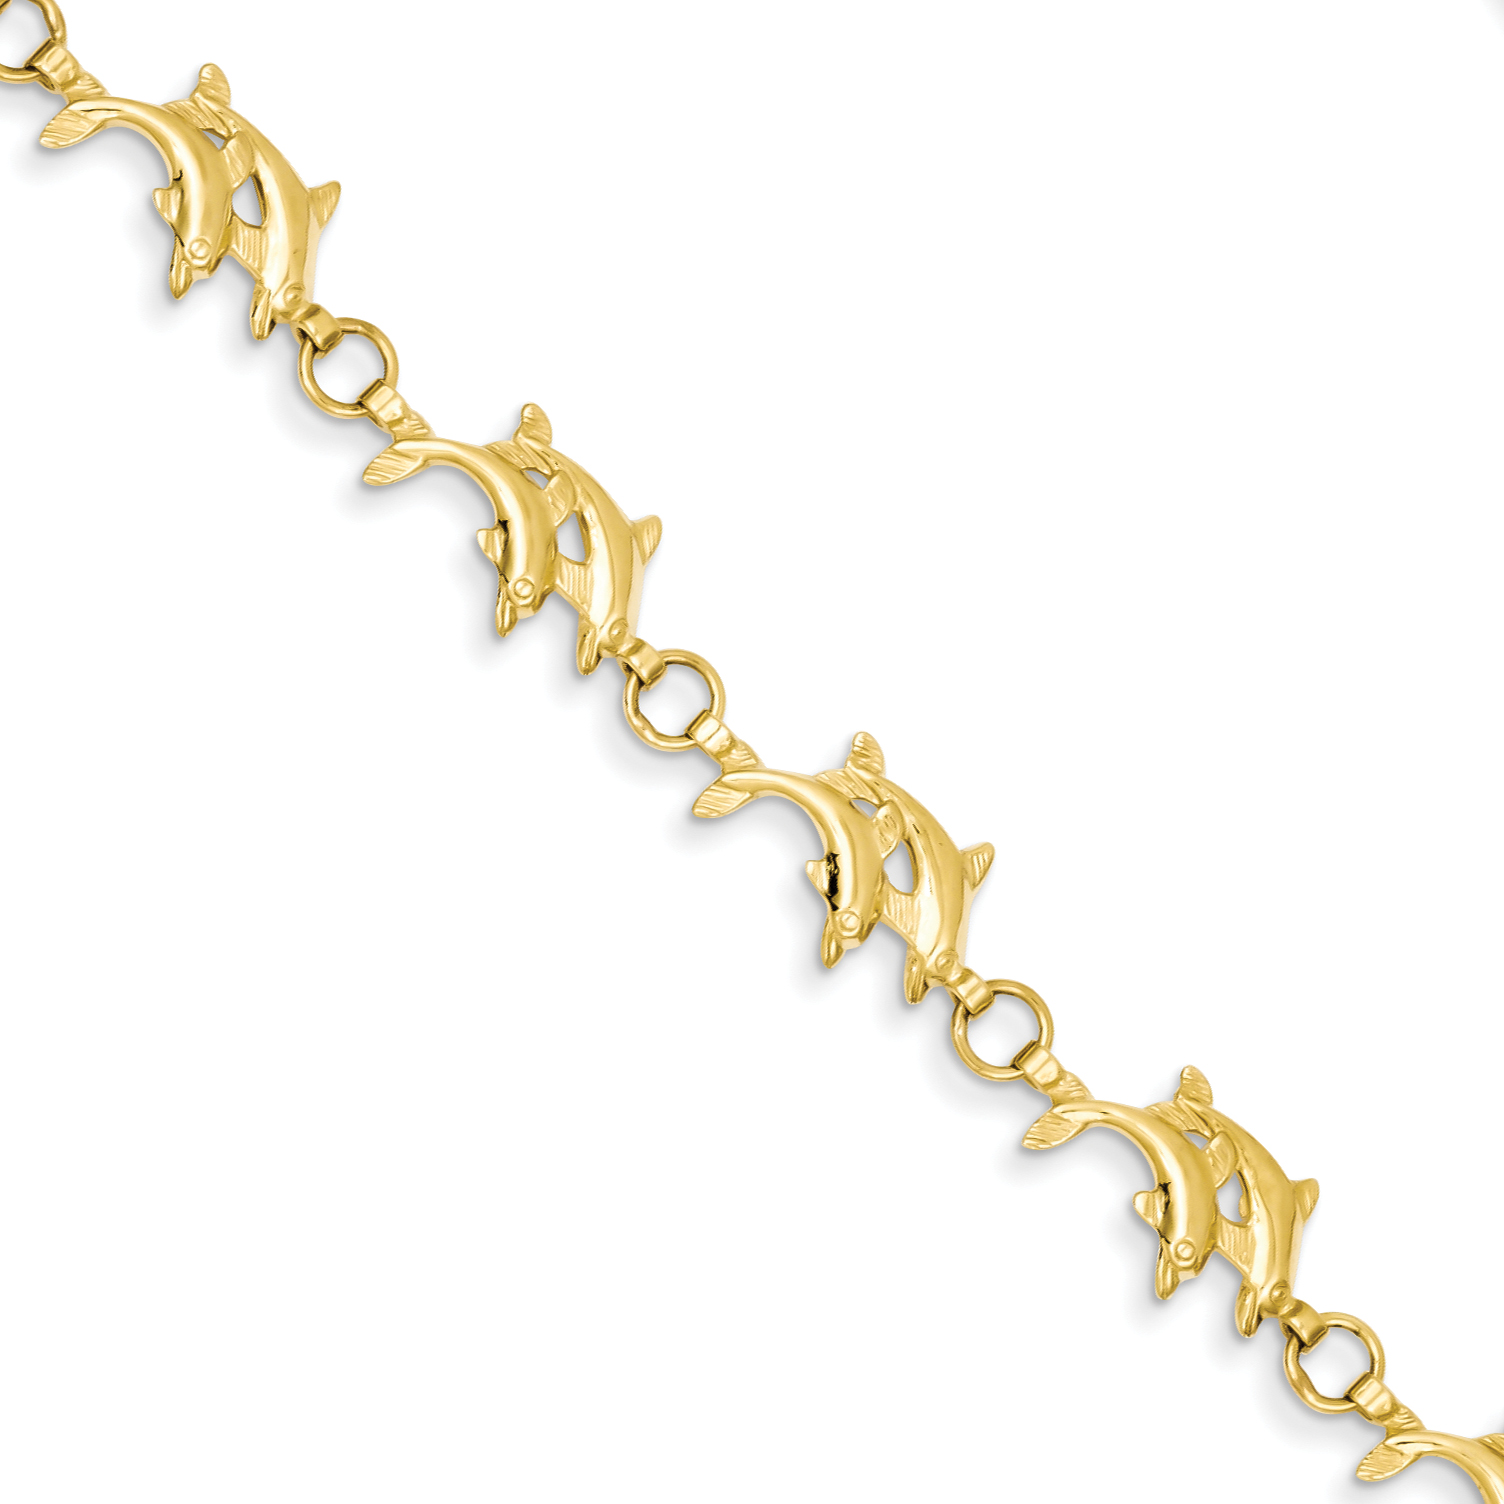 Roy Rose Jewelry 14K Yellow Gold Solid Polished Open-Back Double Dolphins Bracelet ~ Length 8'' inches by